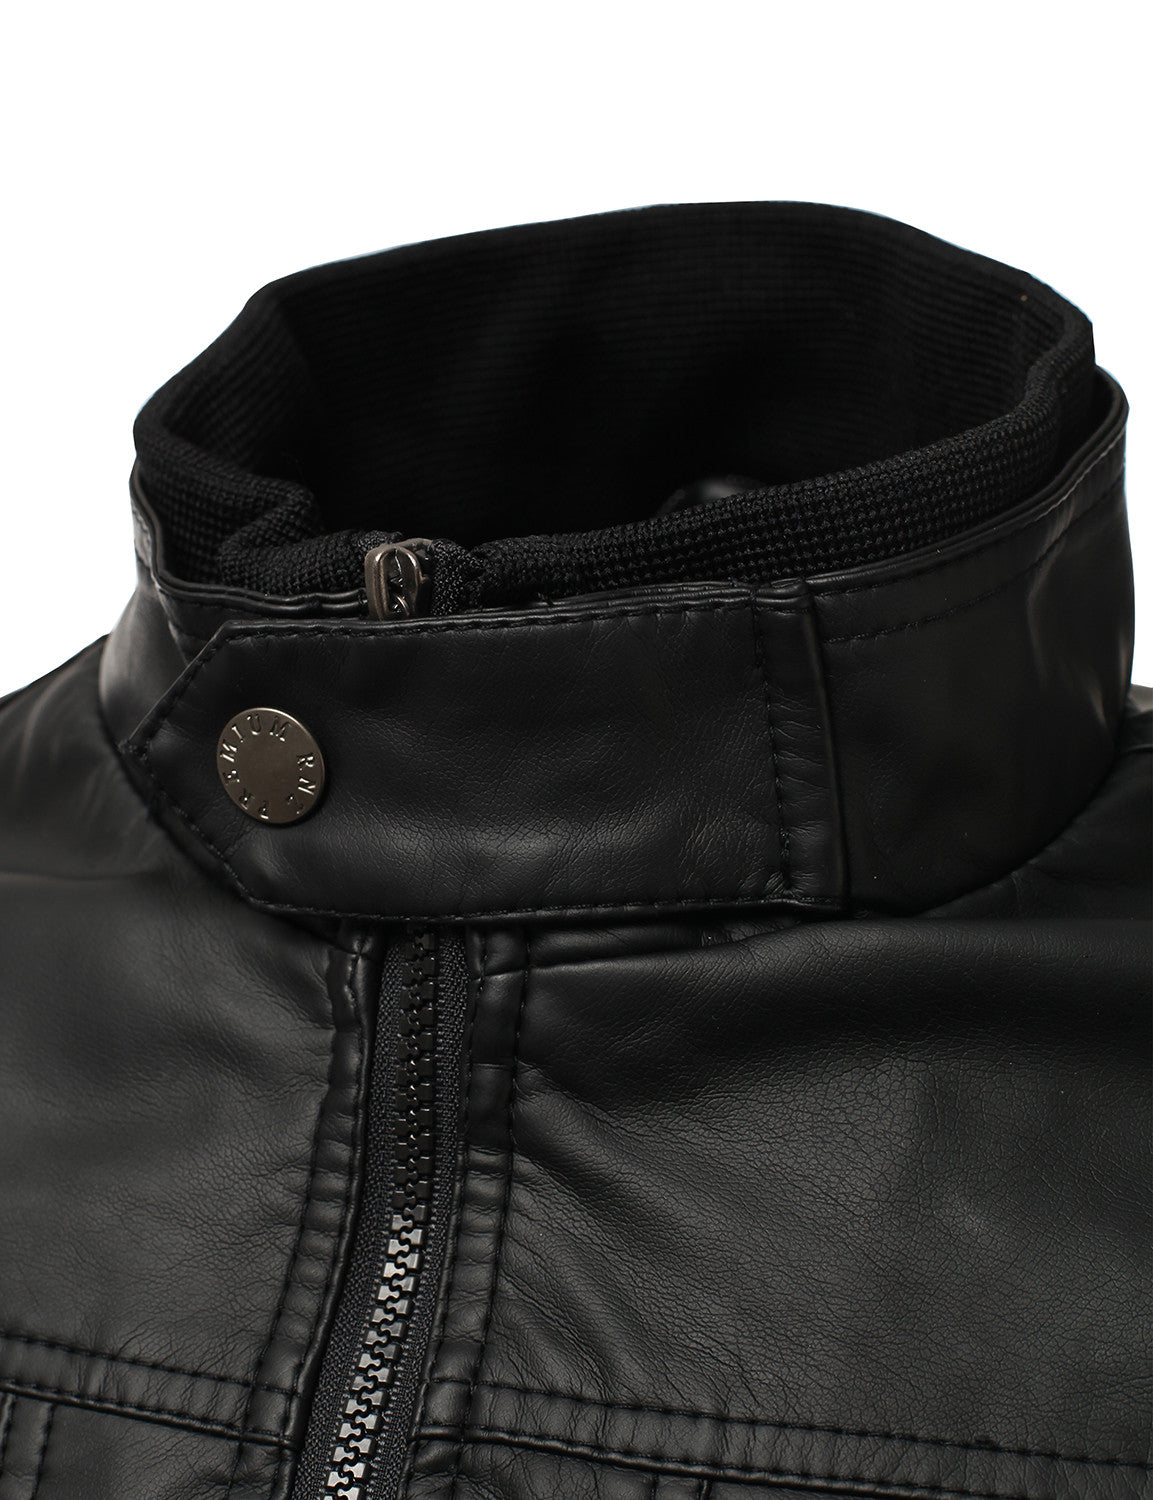 BLACK PU Leather Buckled Hooded Jacket - URBANCREWS